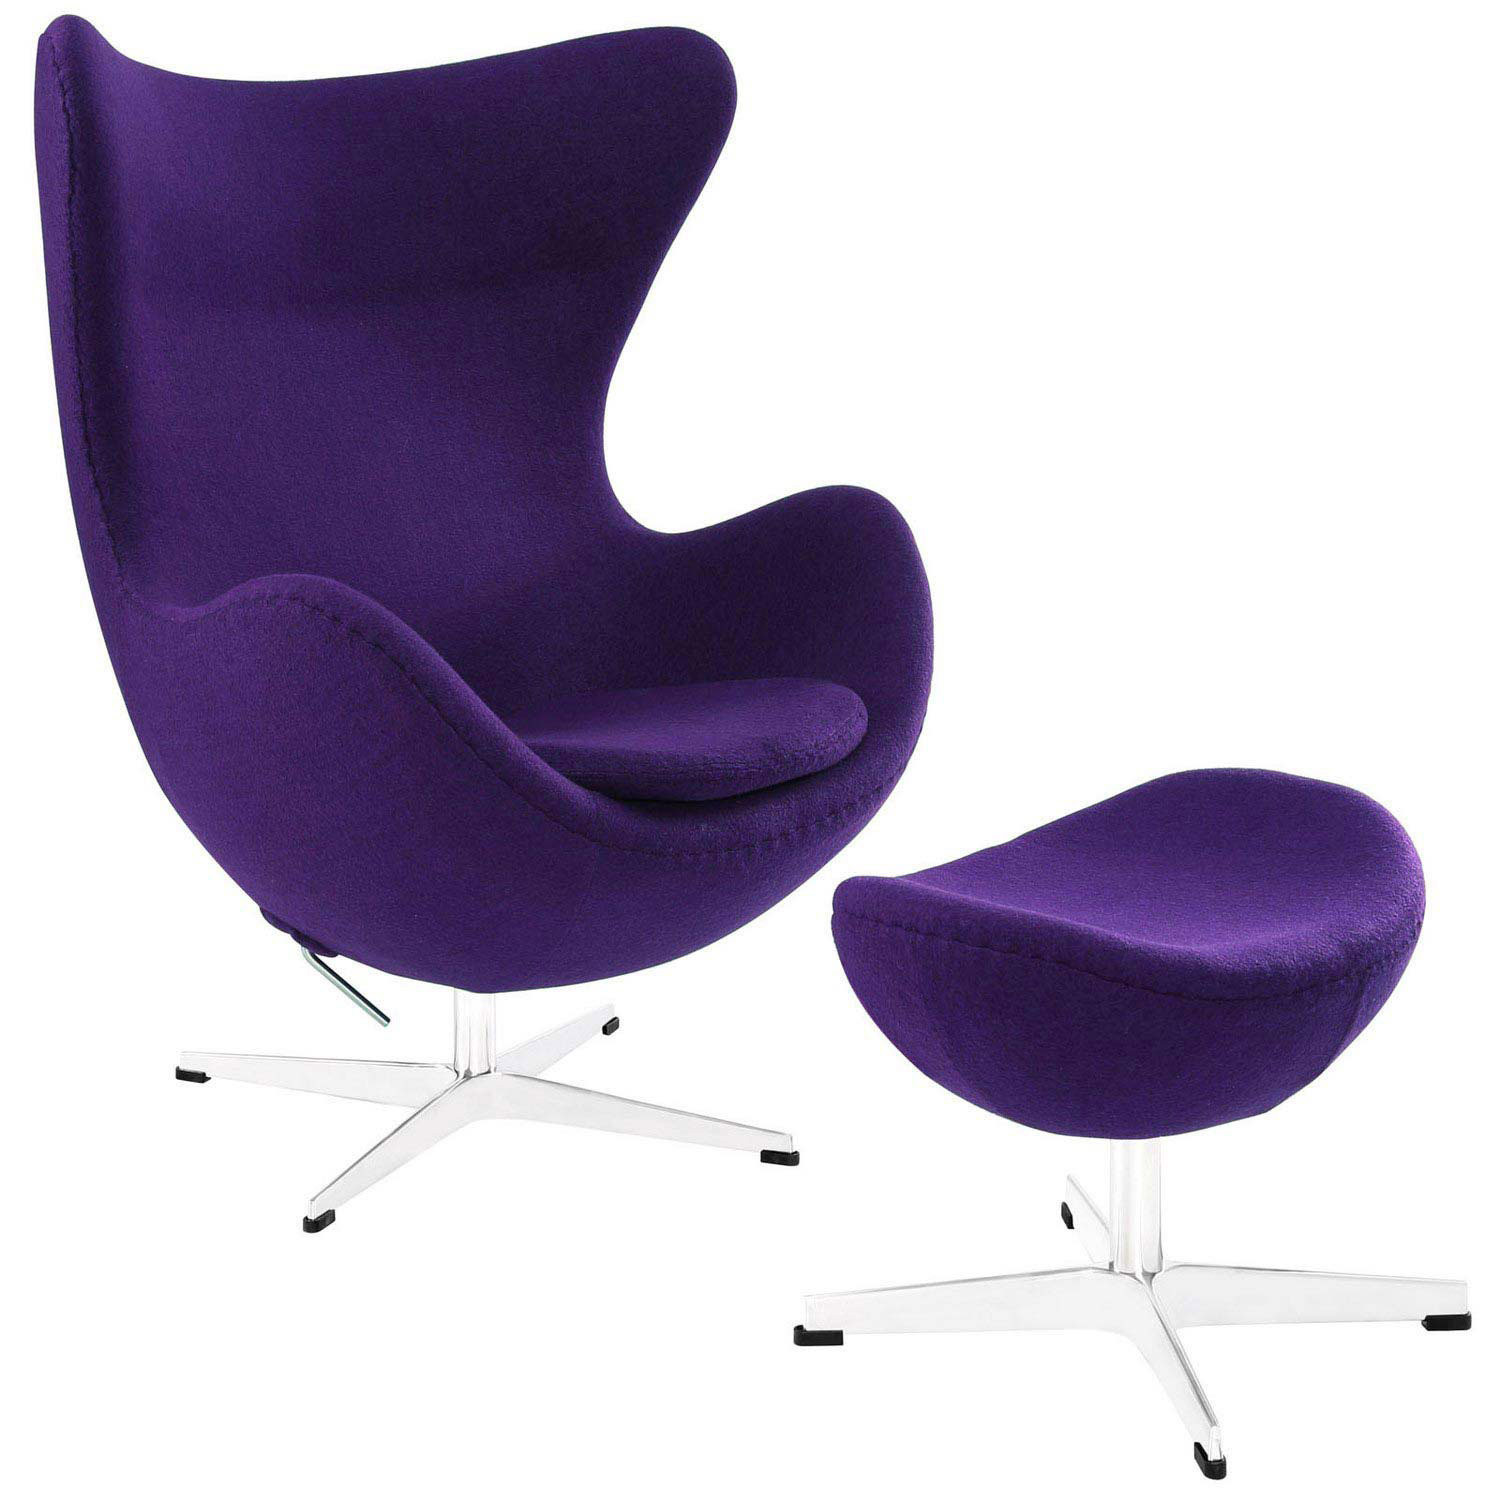 Modway Glove Wool Lounge Chair and Ottoman Set - Purple